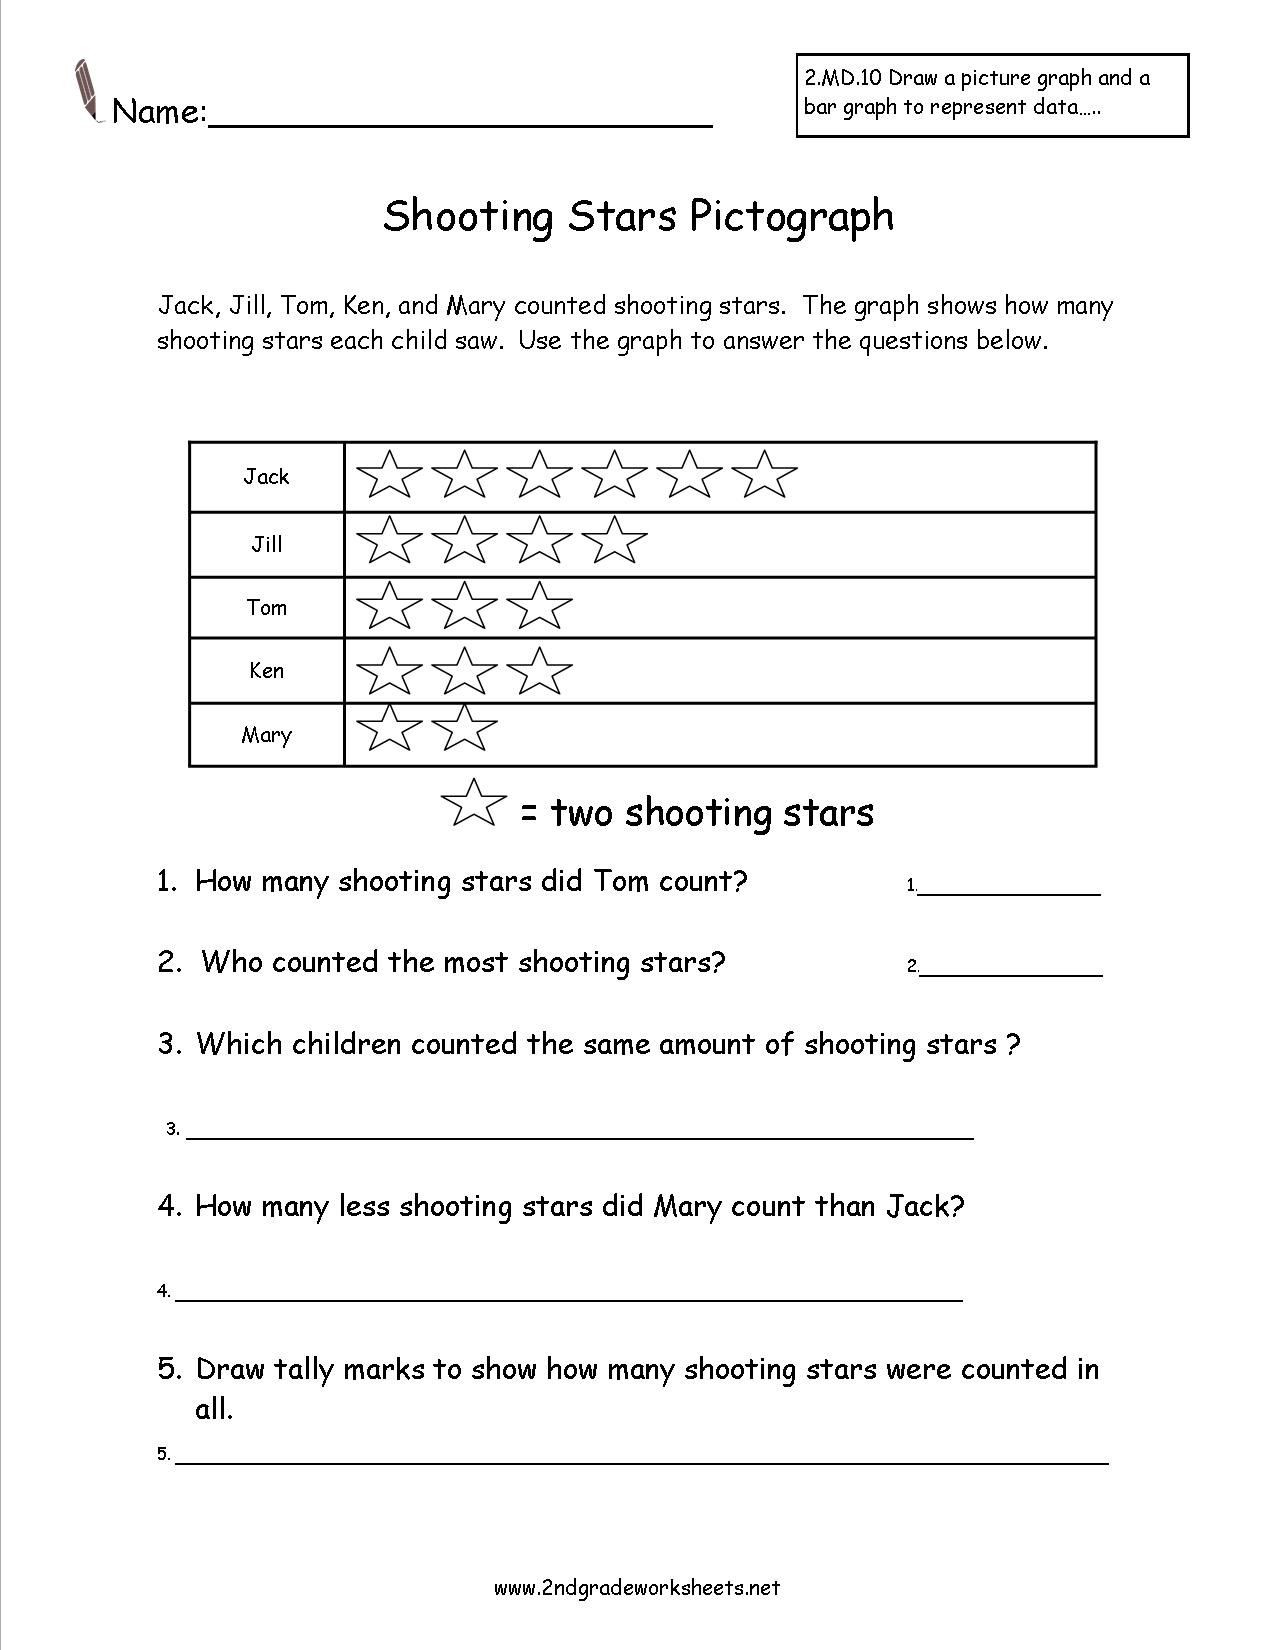 Pictograph for 2nd Grade Shooting Stars Pictograph Worksheet